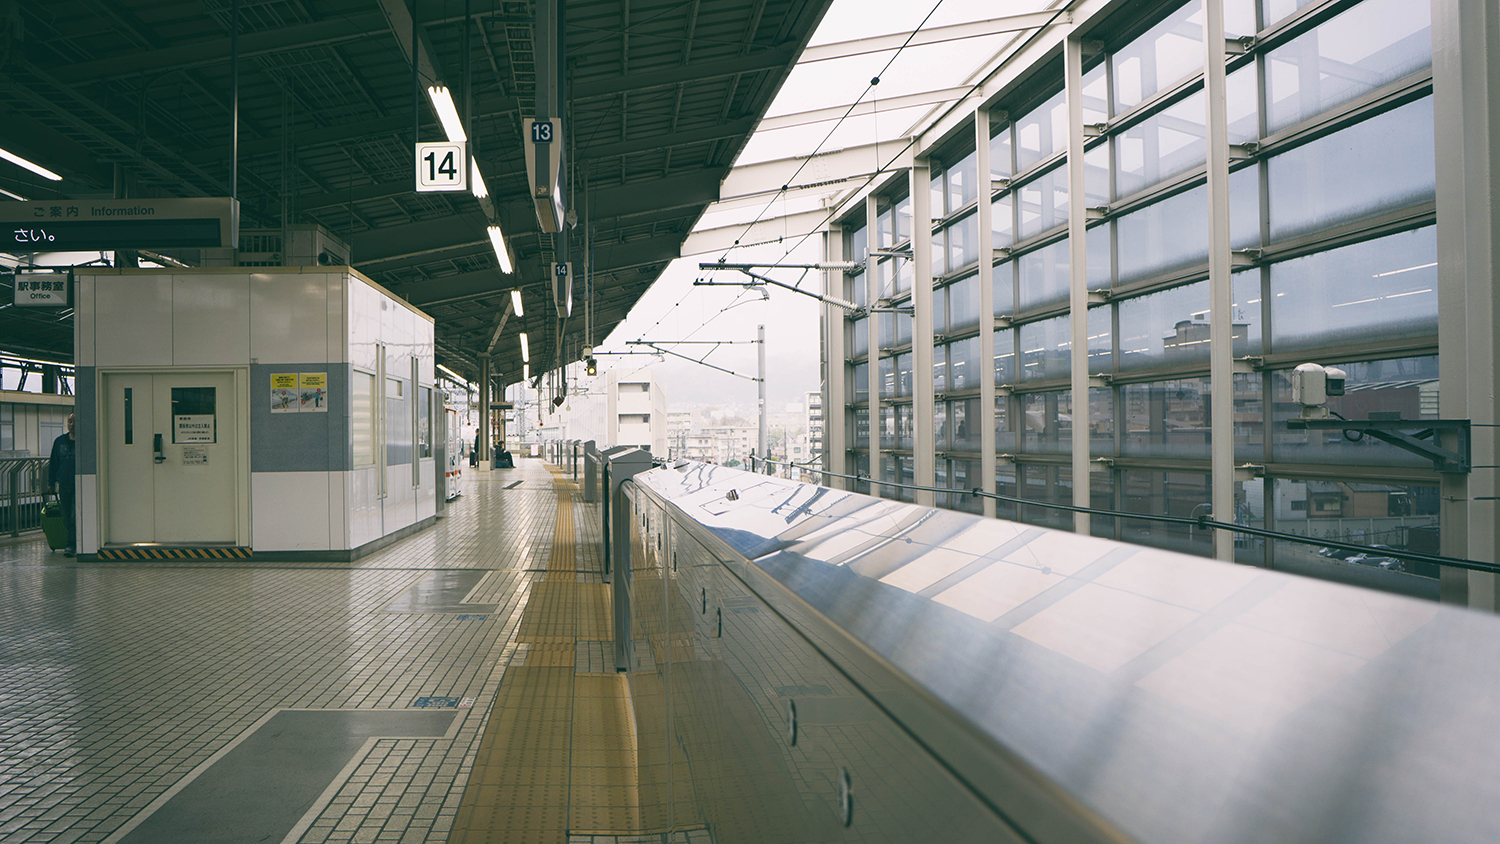 Waiting for our shinkansen